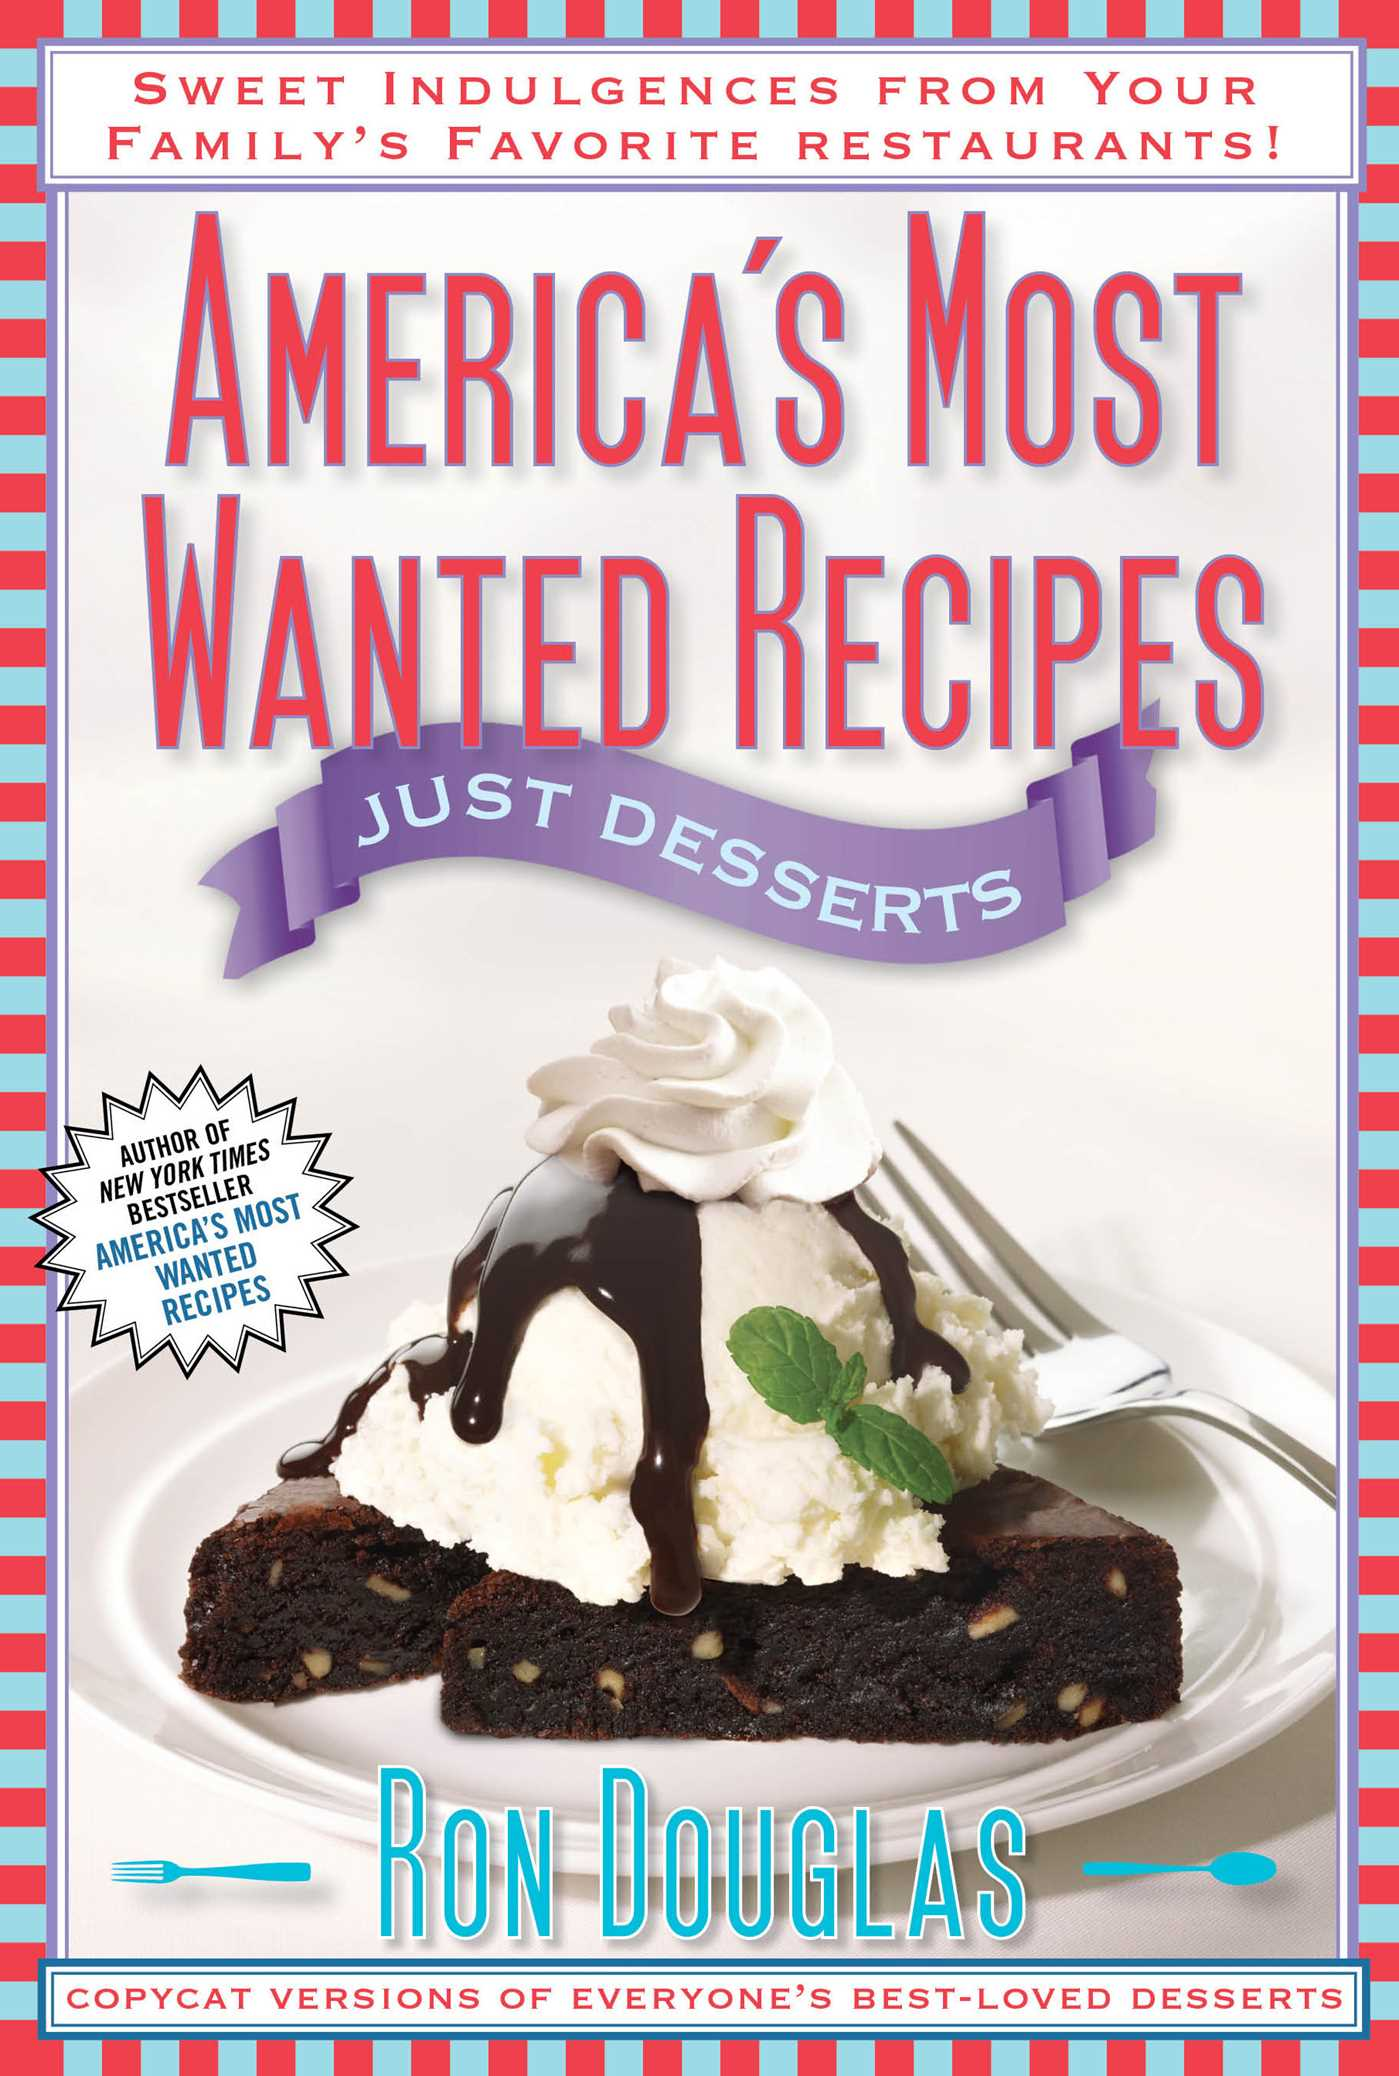 Americas most wanted recipes just desserts 9781451623376 hr